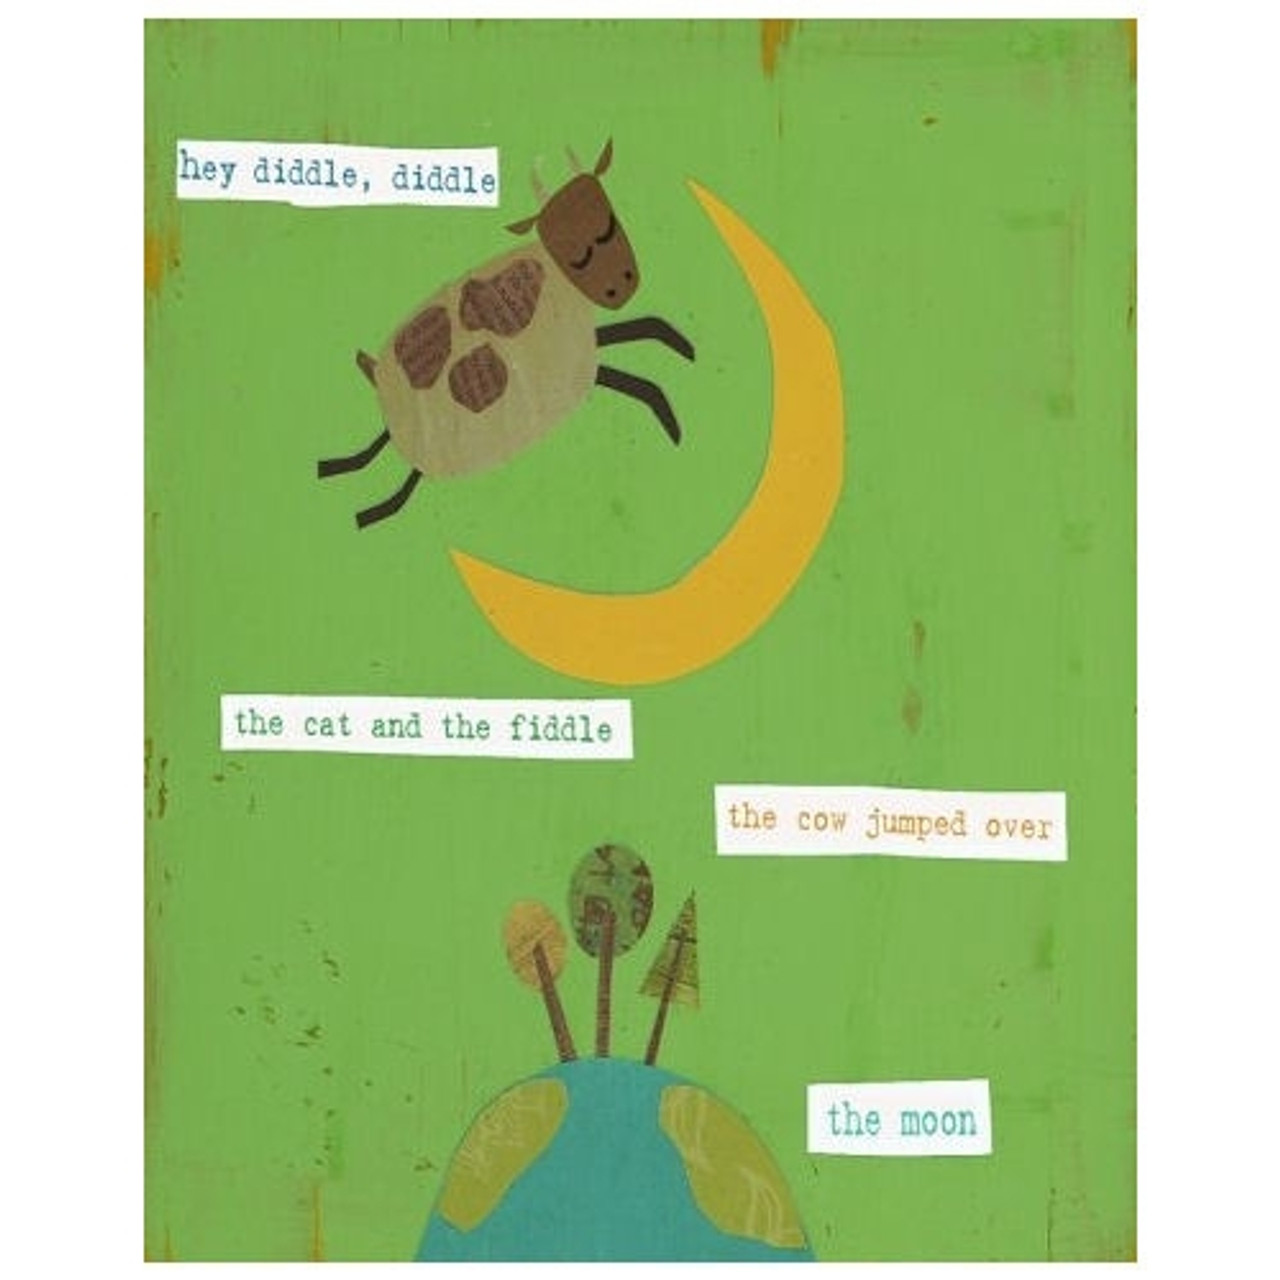 Nursery Wall Art - Hey Diddle Diddle 8